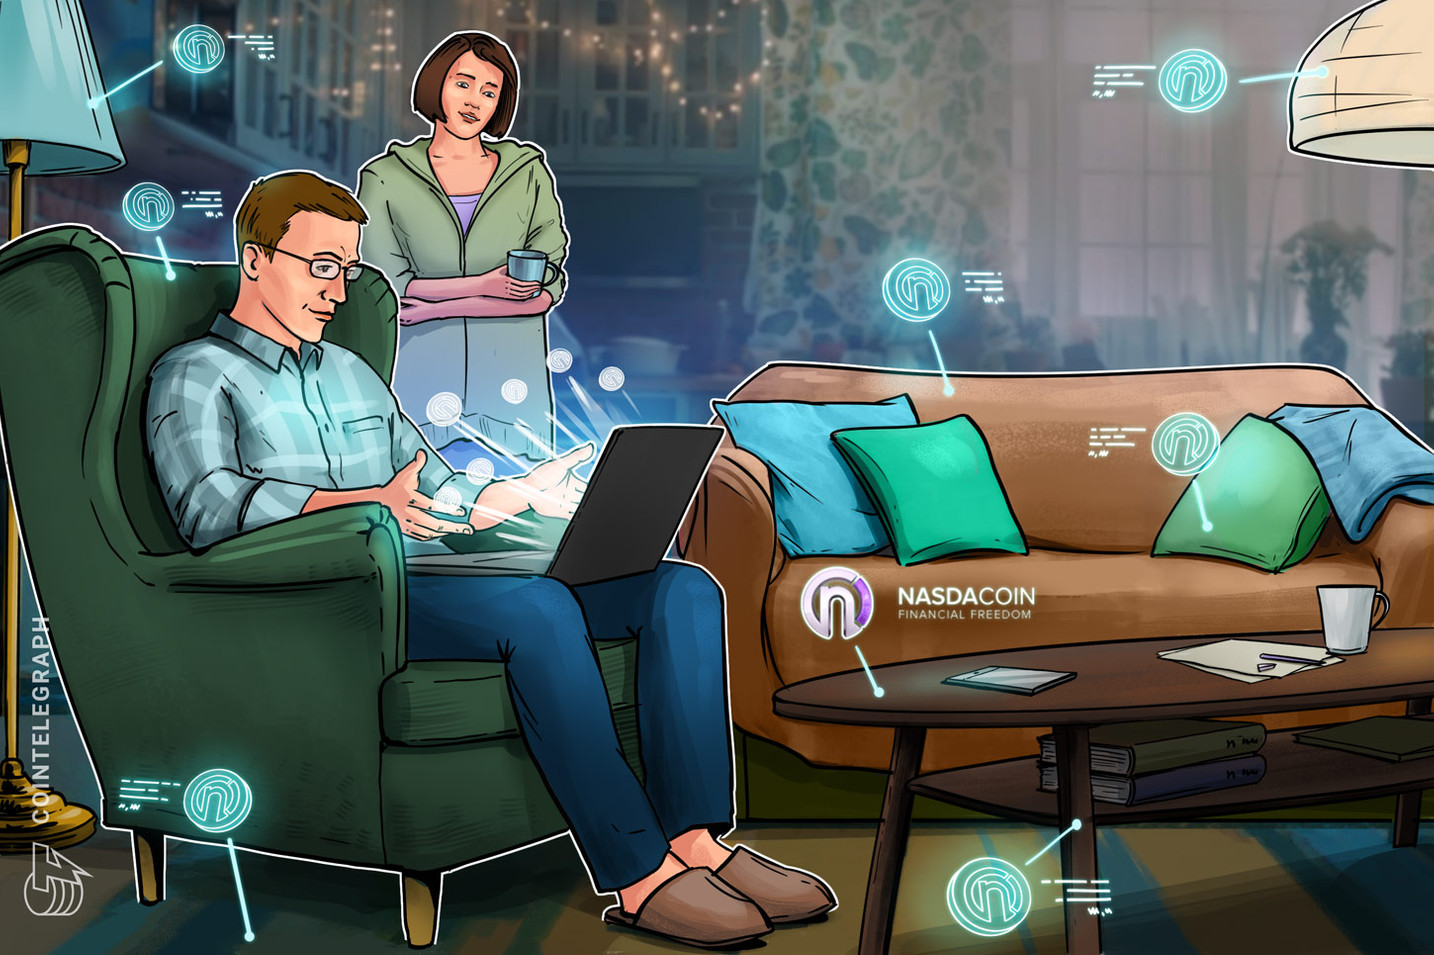 How to Buy Smartphone for Crypto: Project Launches New Blockchain-based Marketplace